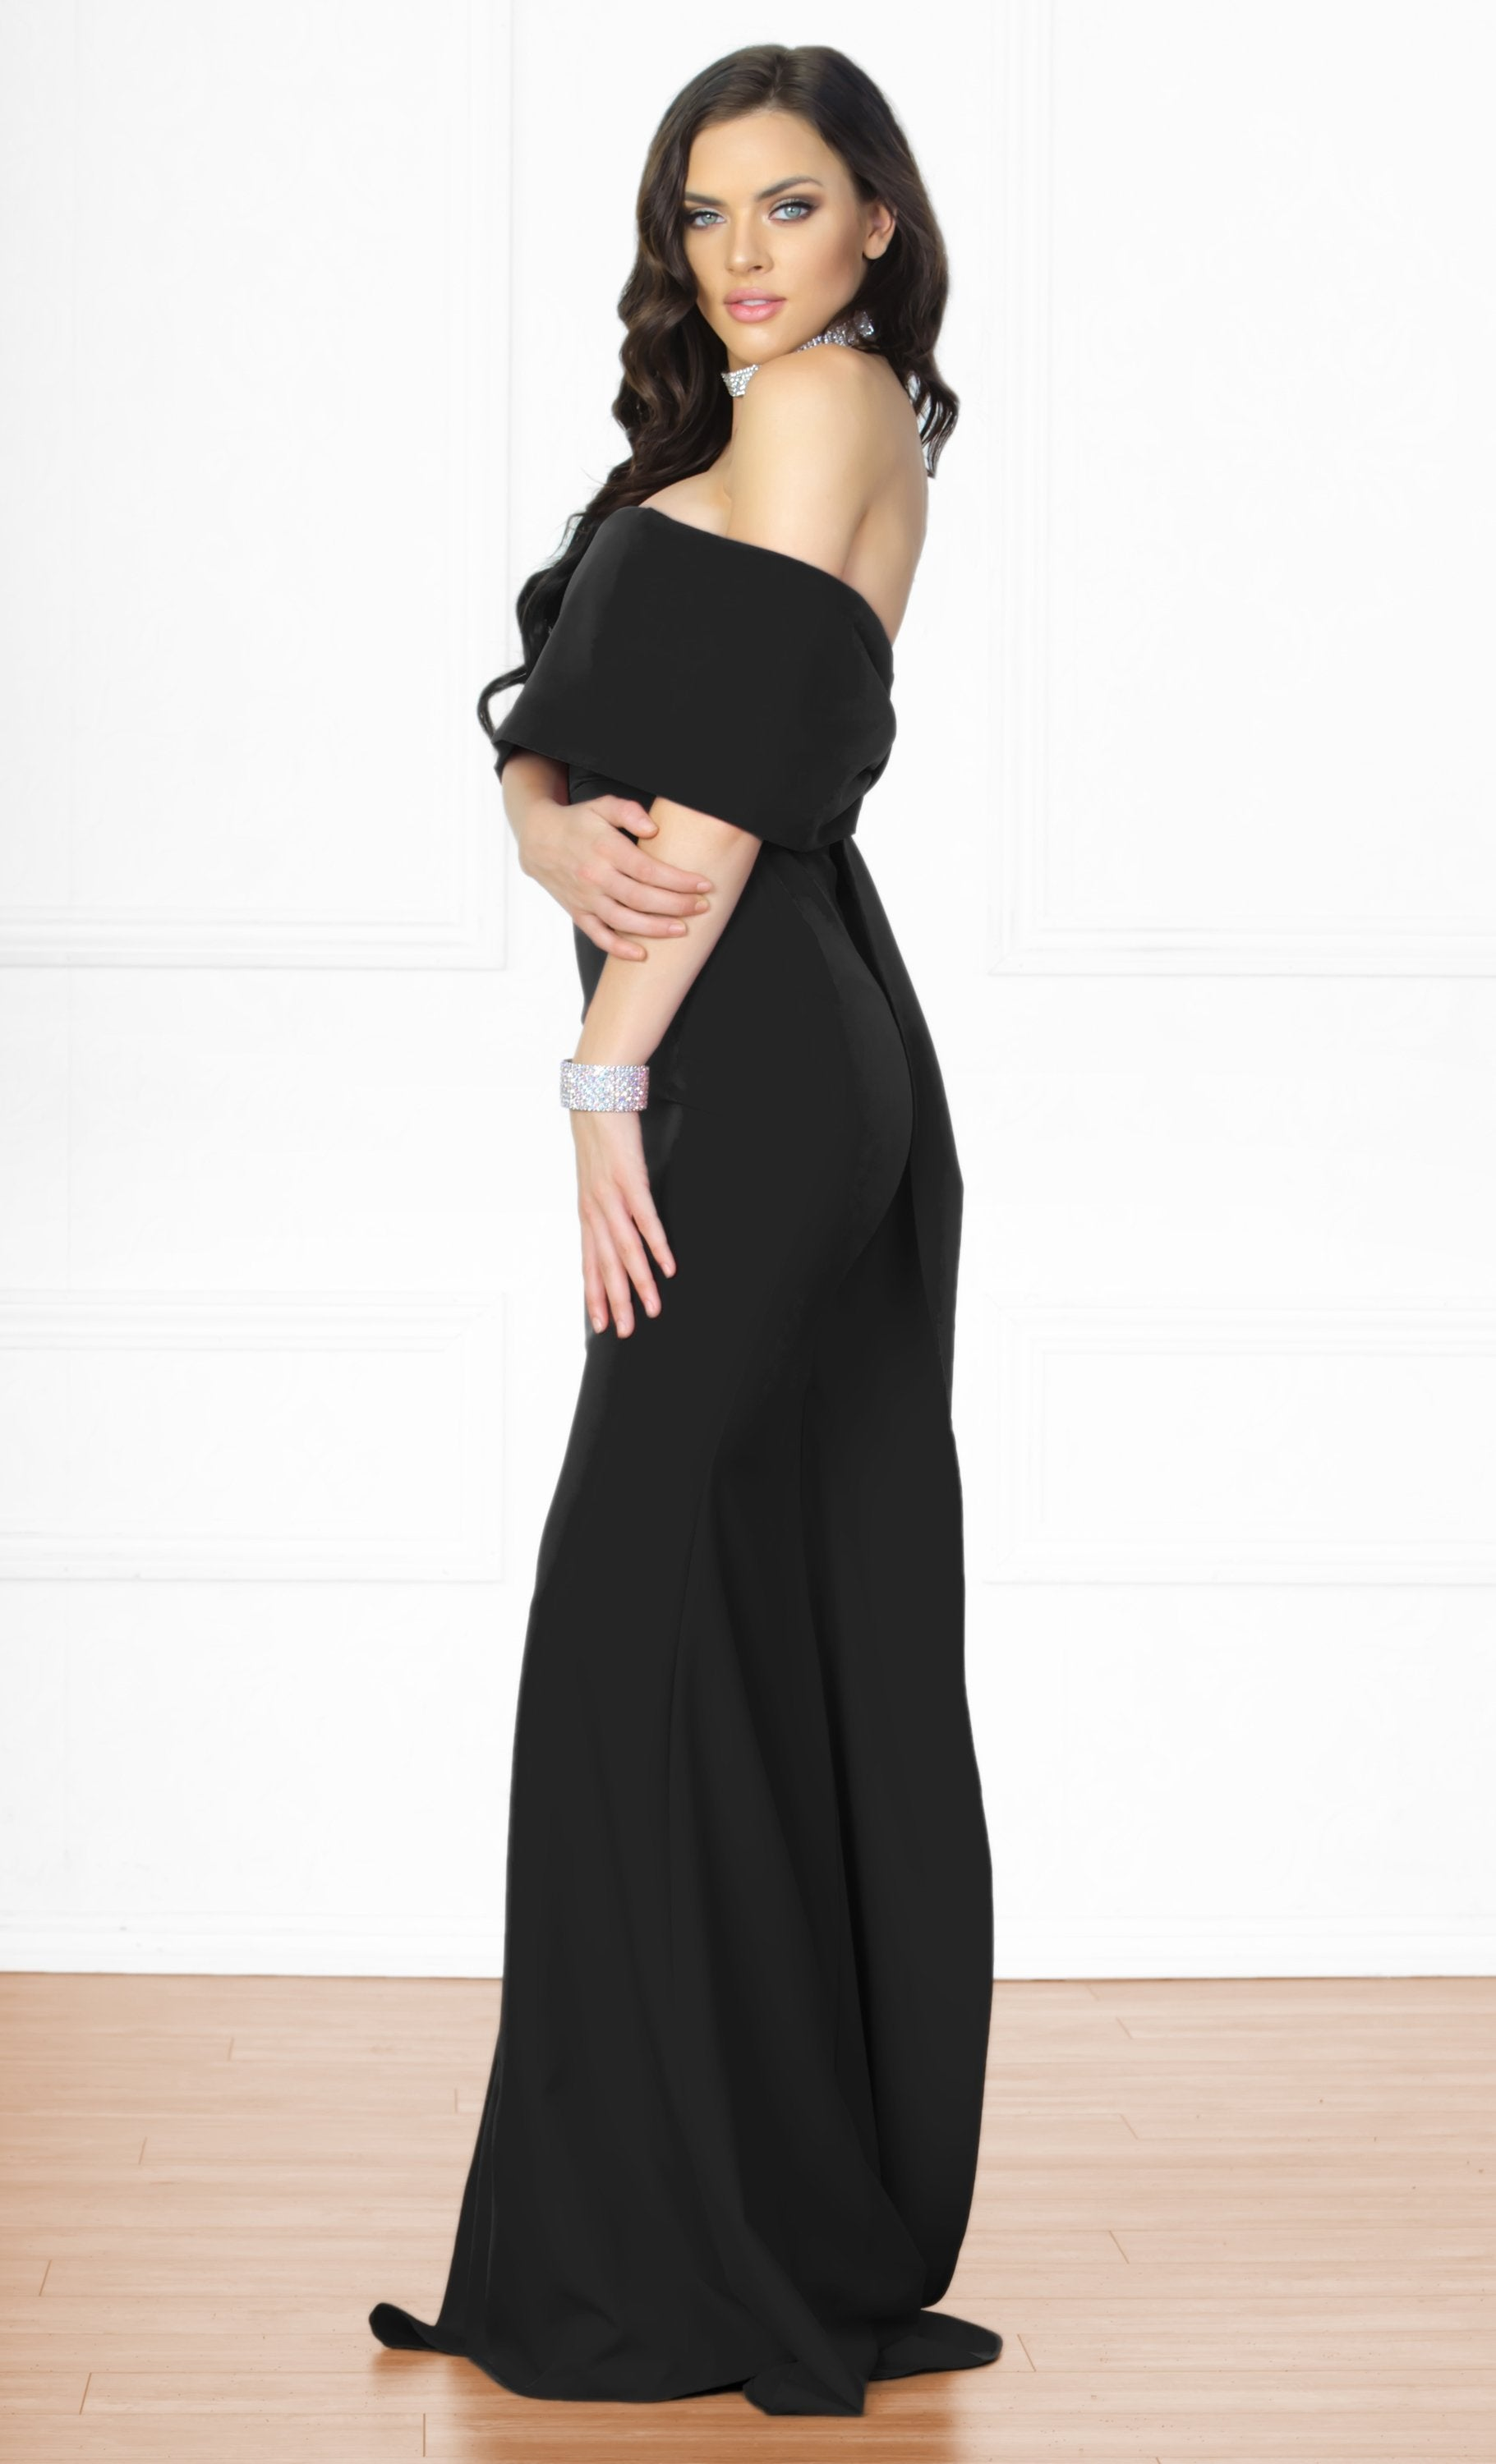 Indie XO Dress You Up Black Short Sleeve Off The Shoulder Bow Back Slit Maxi Dress Evening Gown